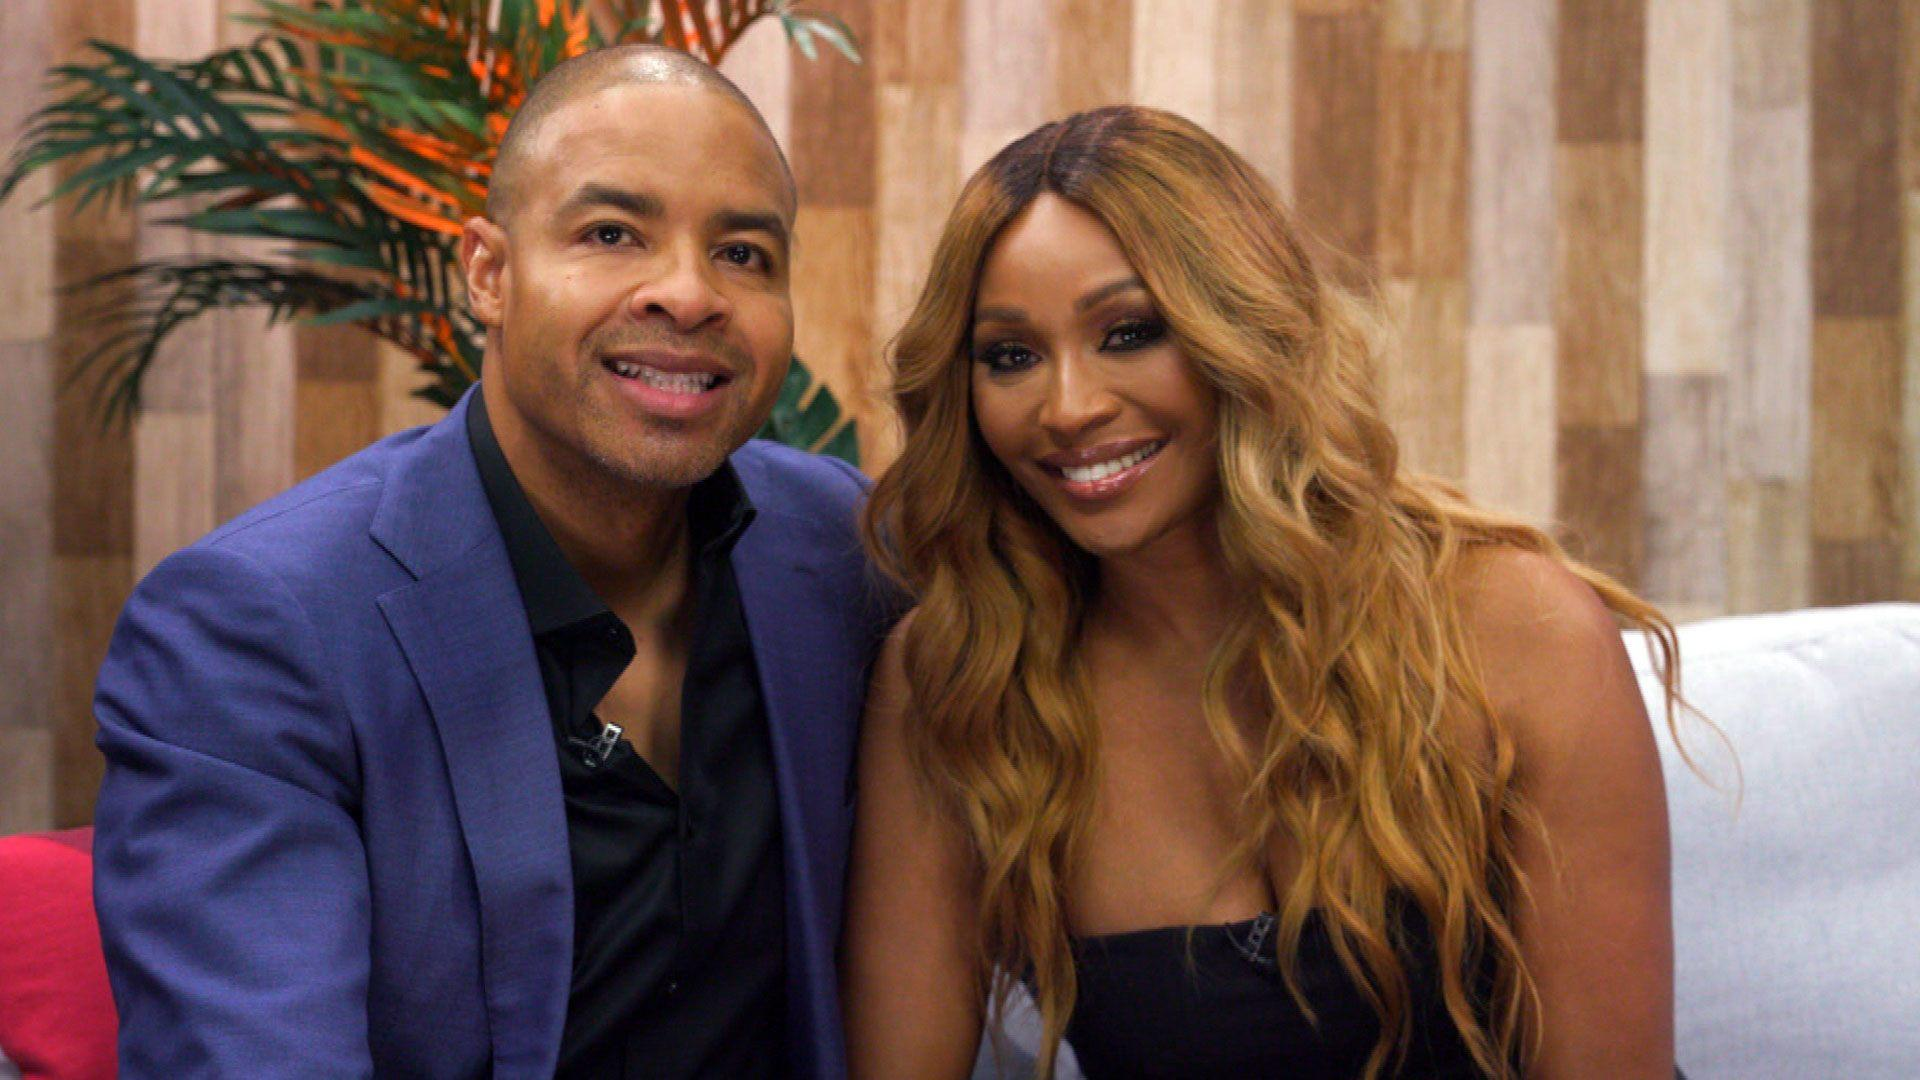 Mike Hill and his fiancee Cynthia Bailey of  Real Housewives of Atlanta